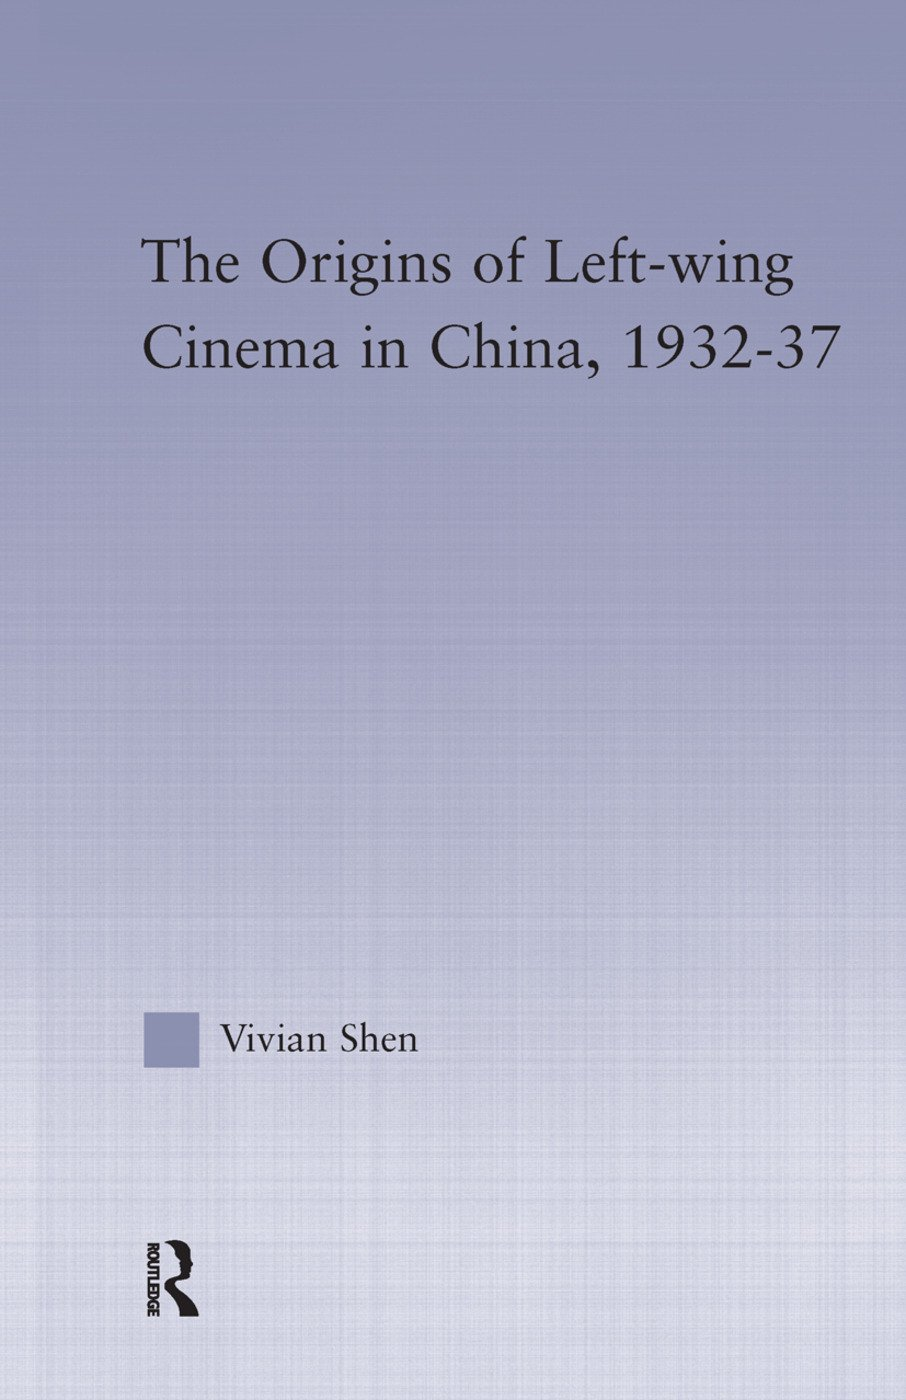 The Origins of Leftwing Cinema in China, 1932-37: 1st Edition (Paperback) book cover